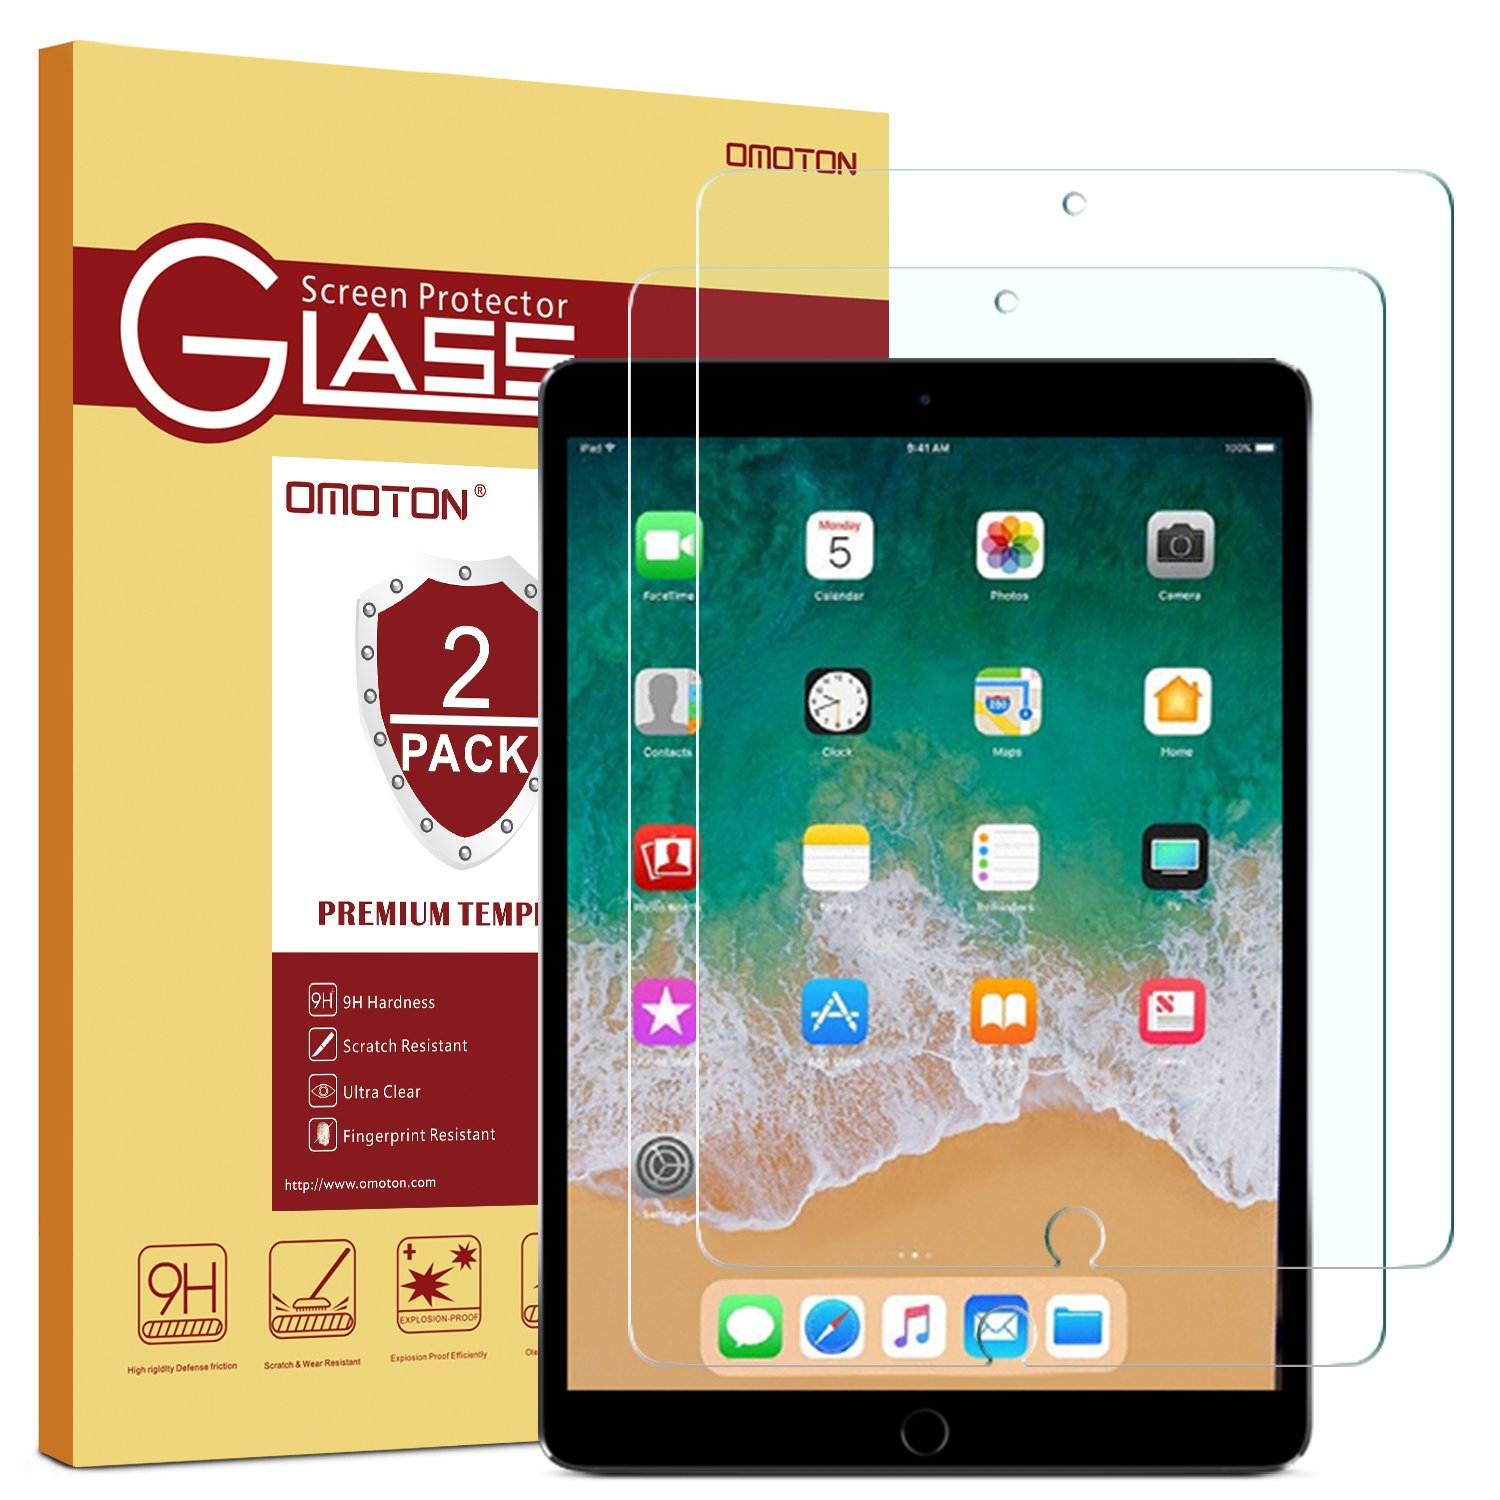 [2 Pack] OMOTON iPad Pro 10.5 Screen Protector, Tempered Glass Screen Protector with [9H Hardness] [Crystal Clear] [Anti-Scratch] [Bubble-Free Installation] for iPad Pro 10.5 inch